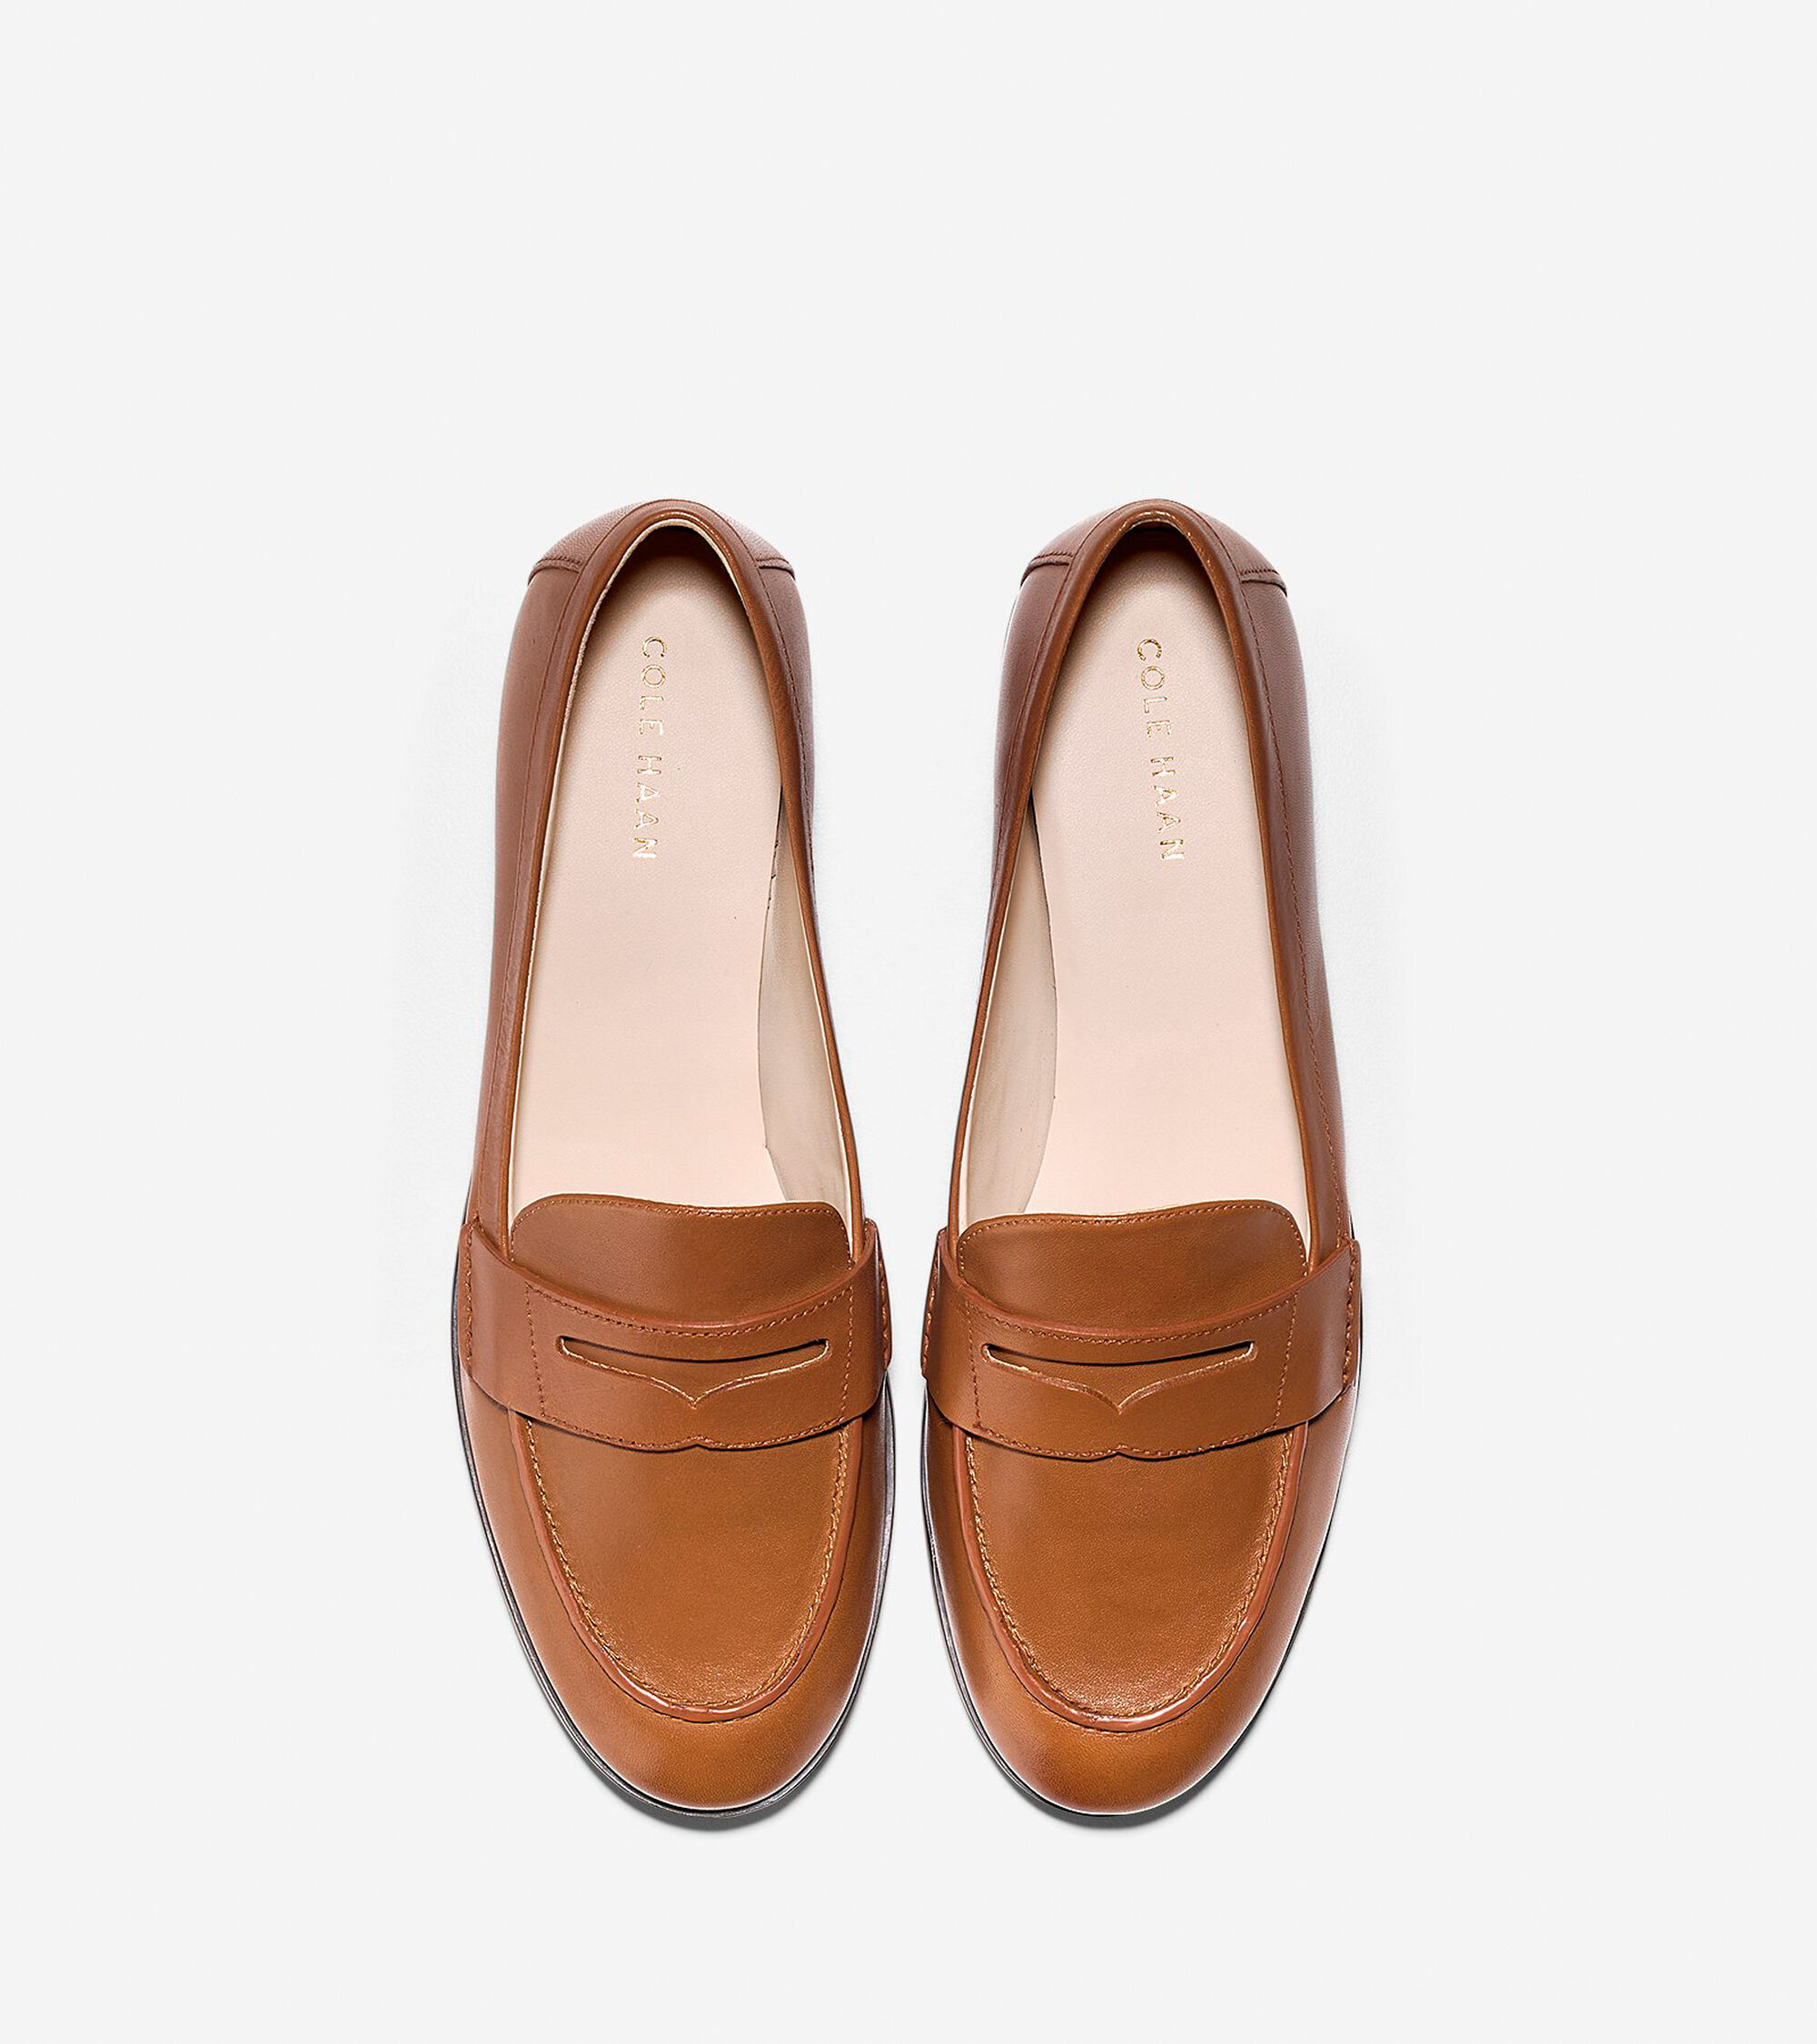 a01d4d30f35 Women s Pinch Grand Penny Loafers in British Tan